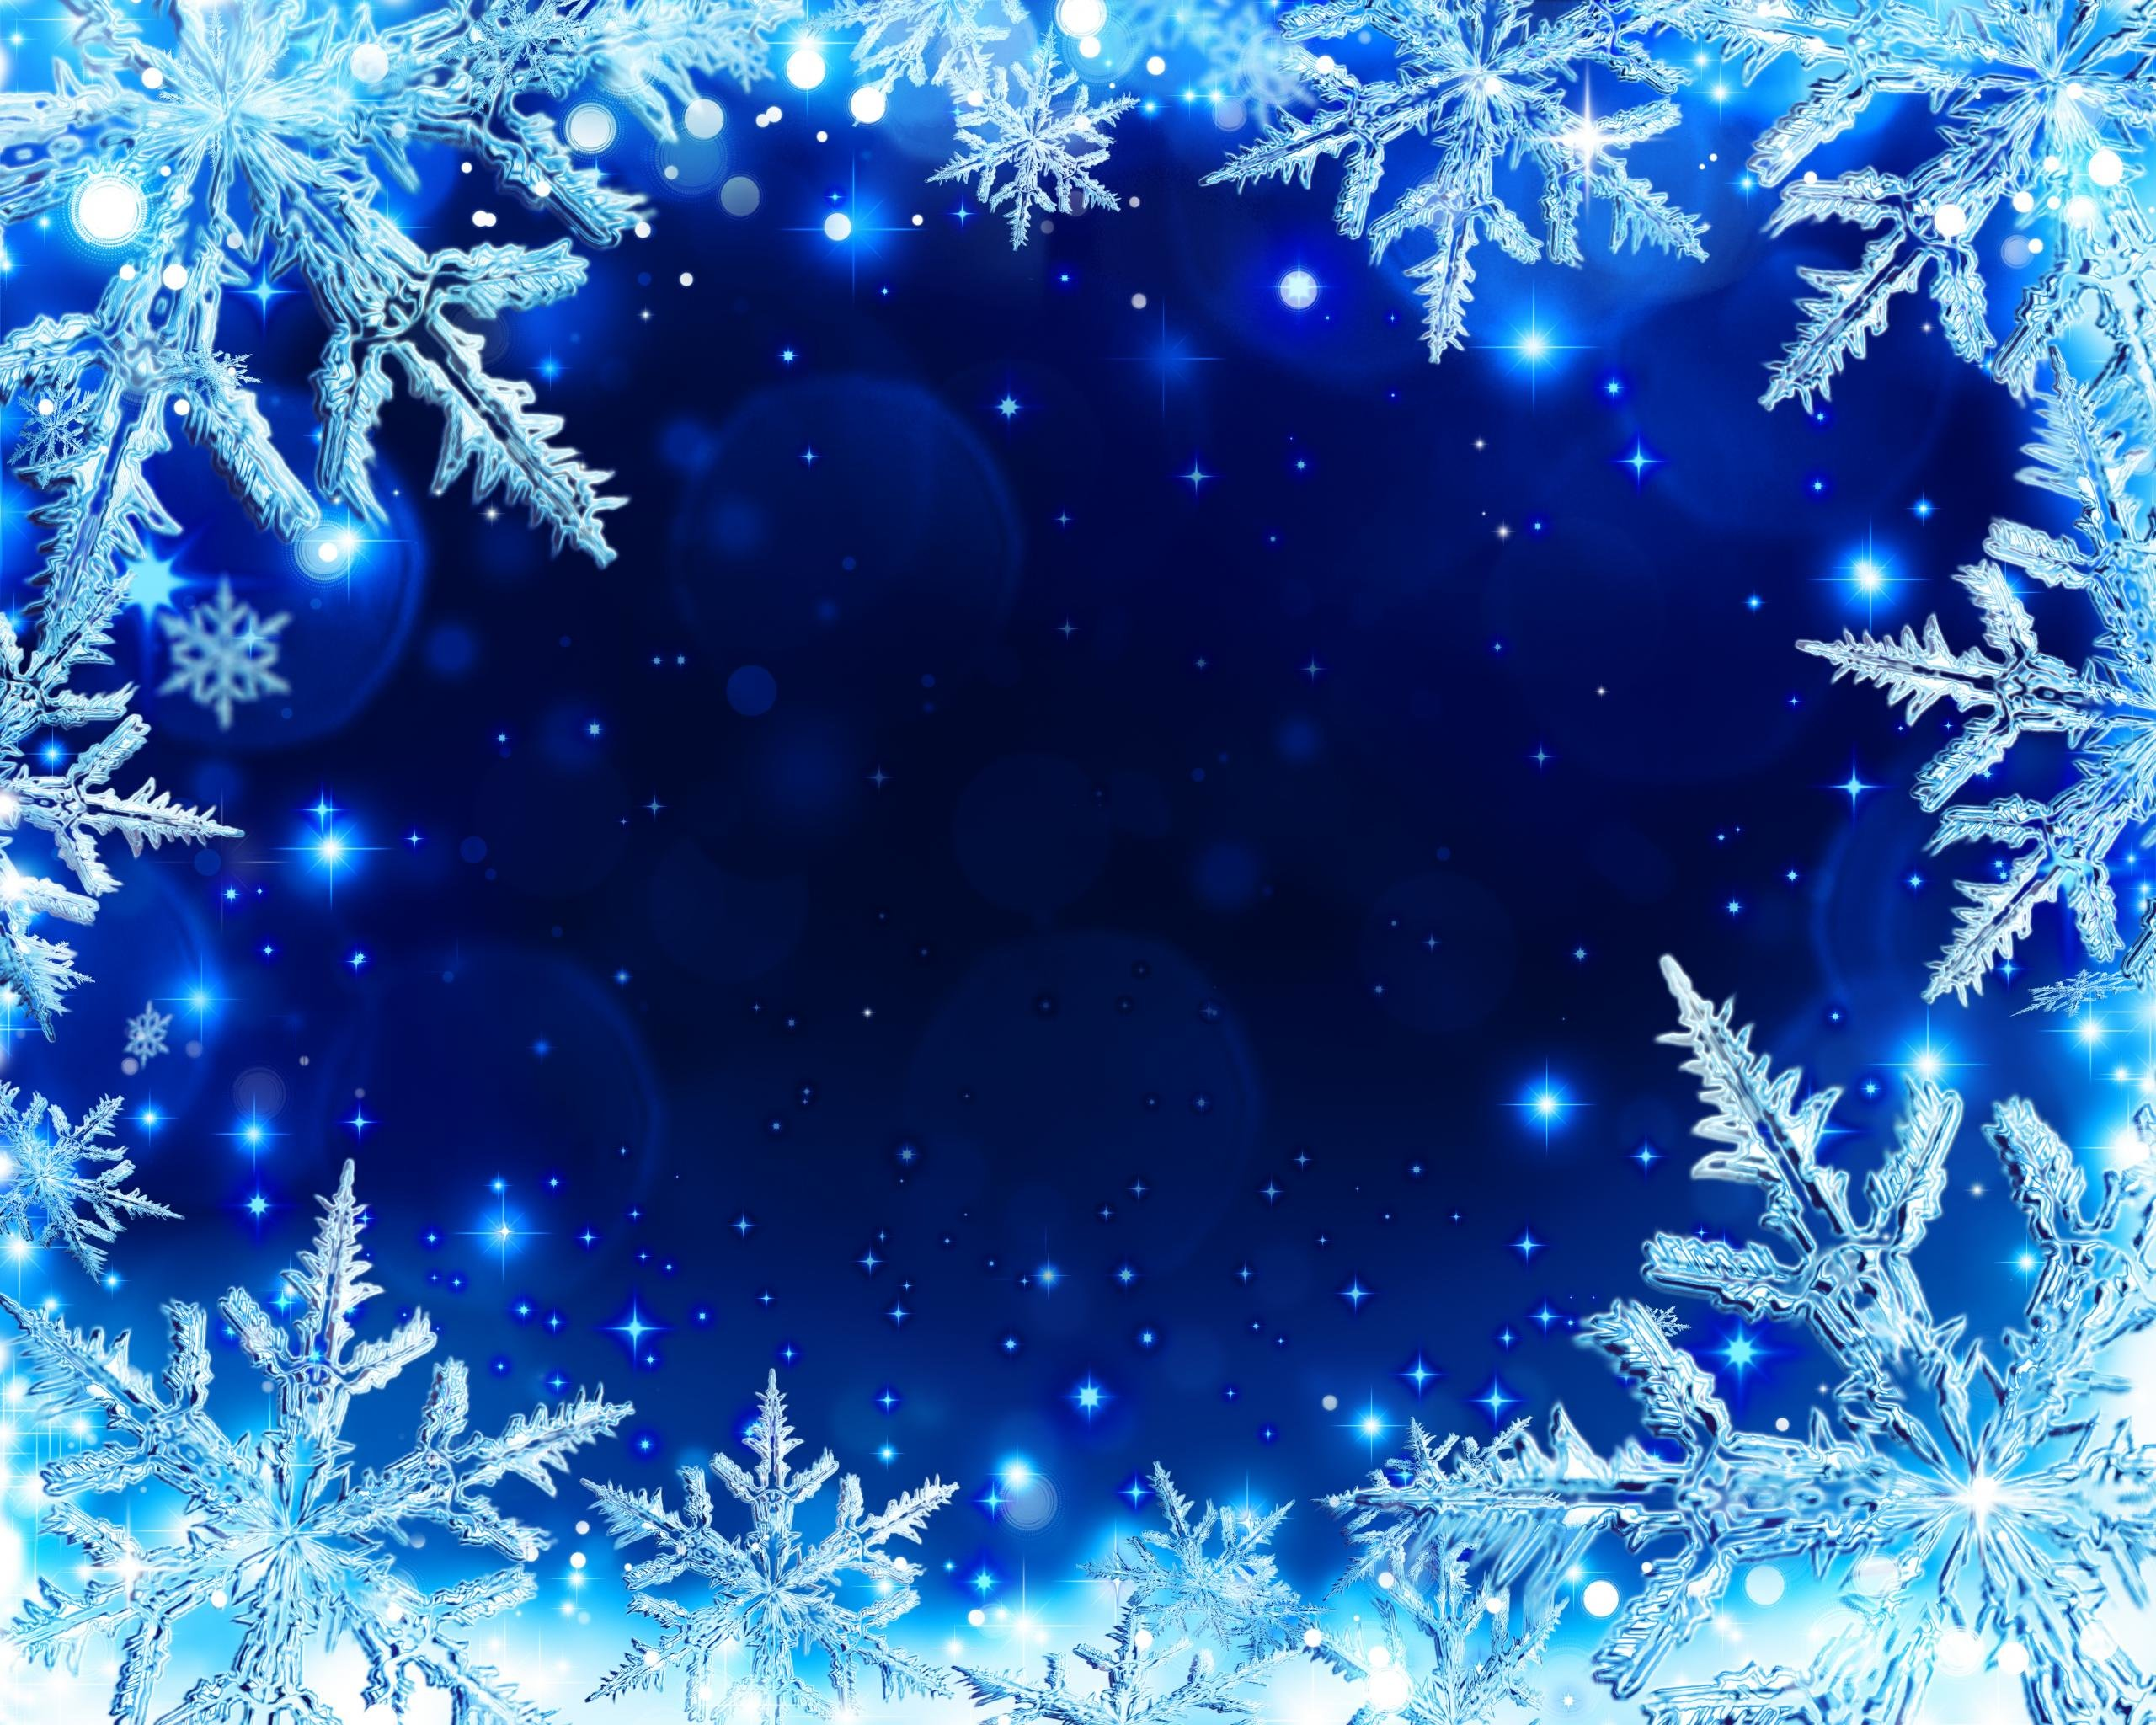 Free Snowflake High Quality Background Id 45399 For Hd 2560x2048 Desktop